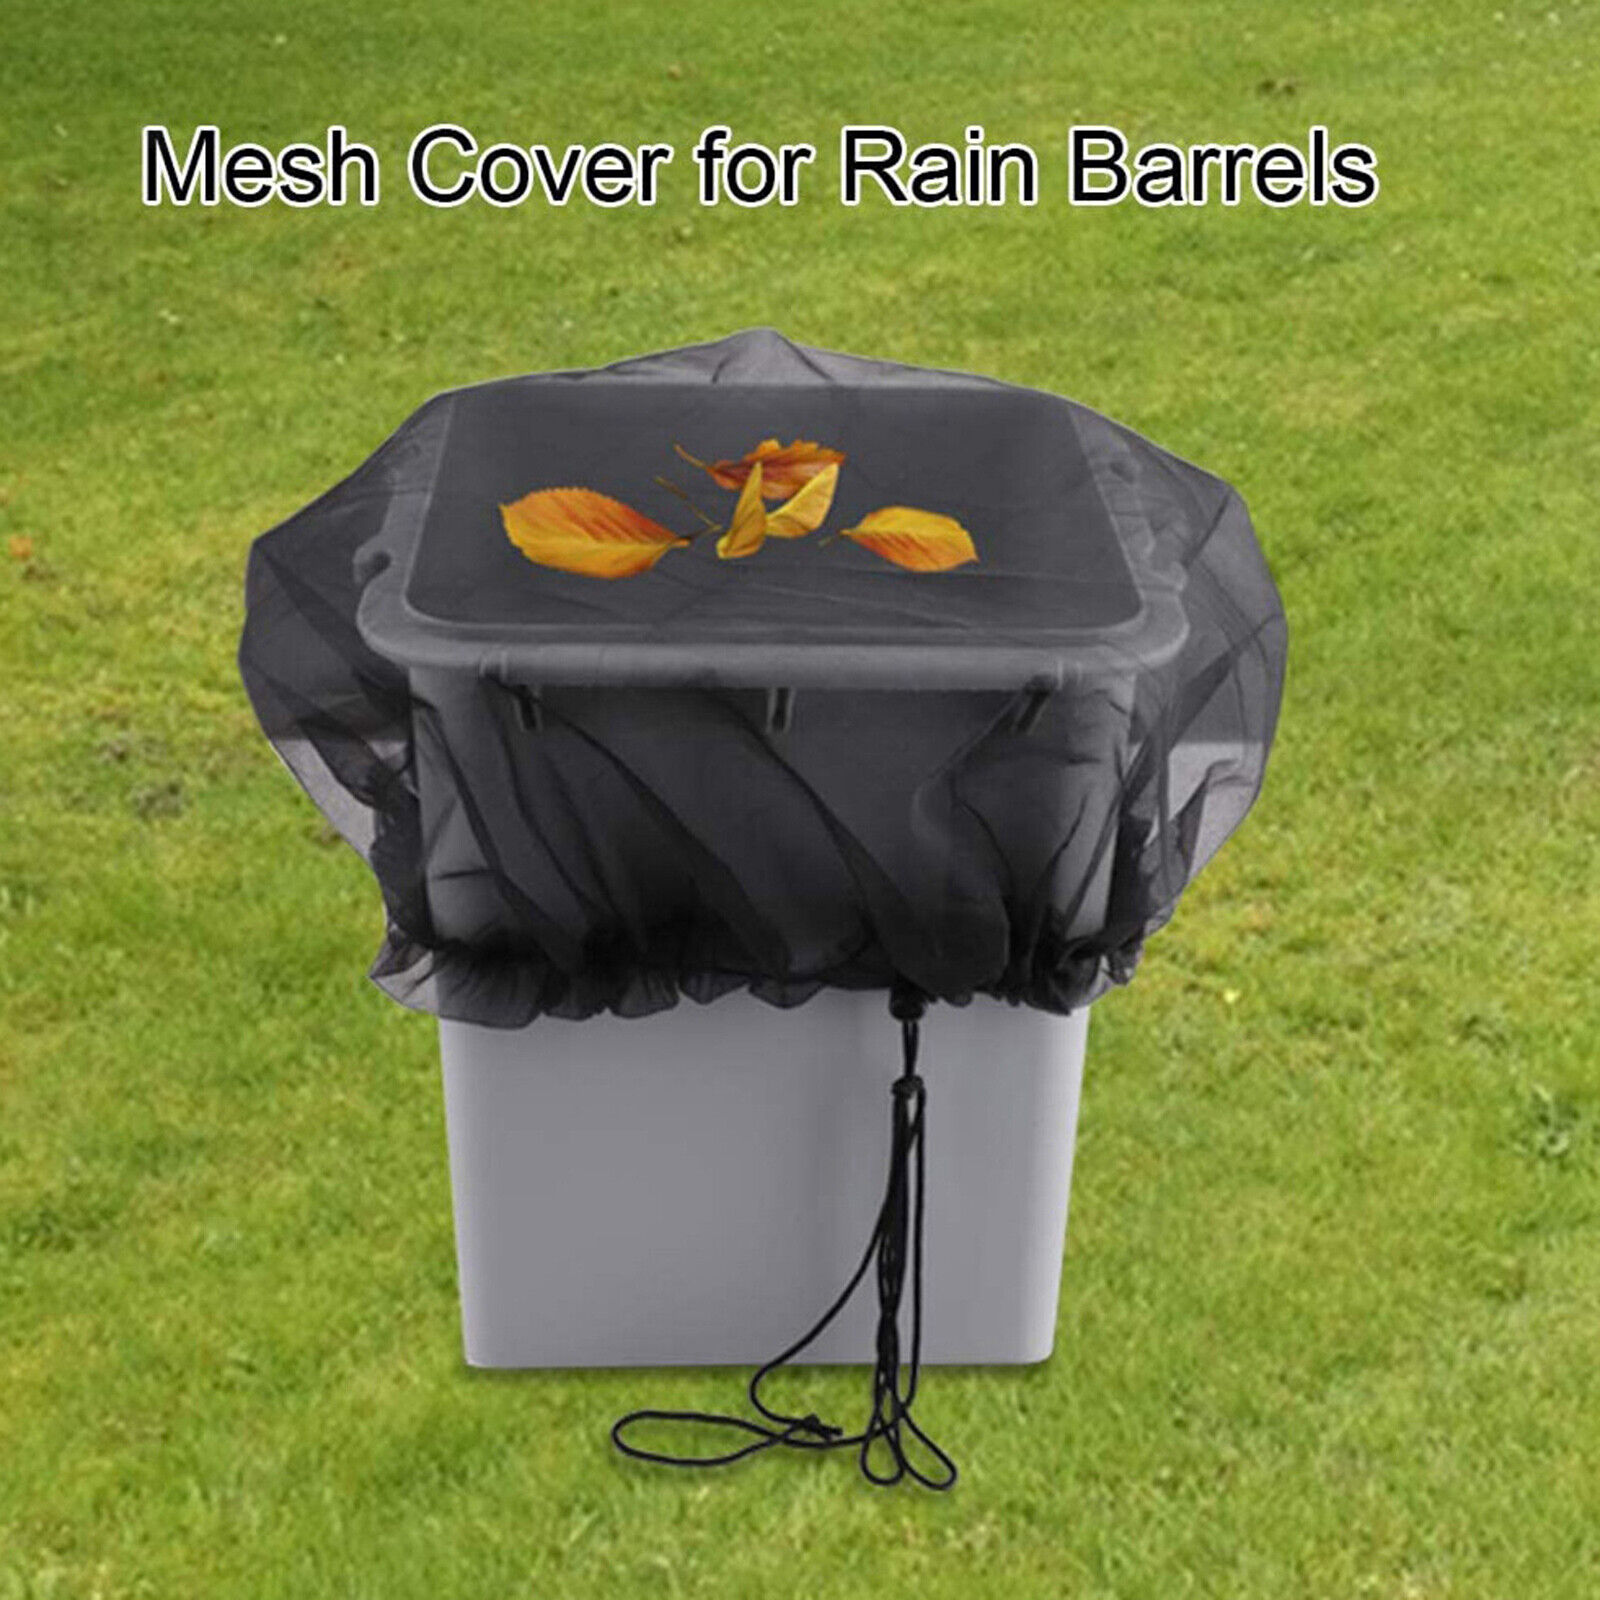 Mesh Cover Netting for Rain Barrels Rainwater Collection System Easy Install